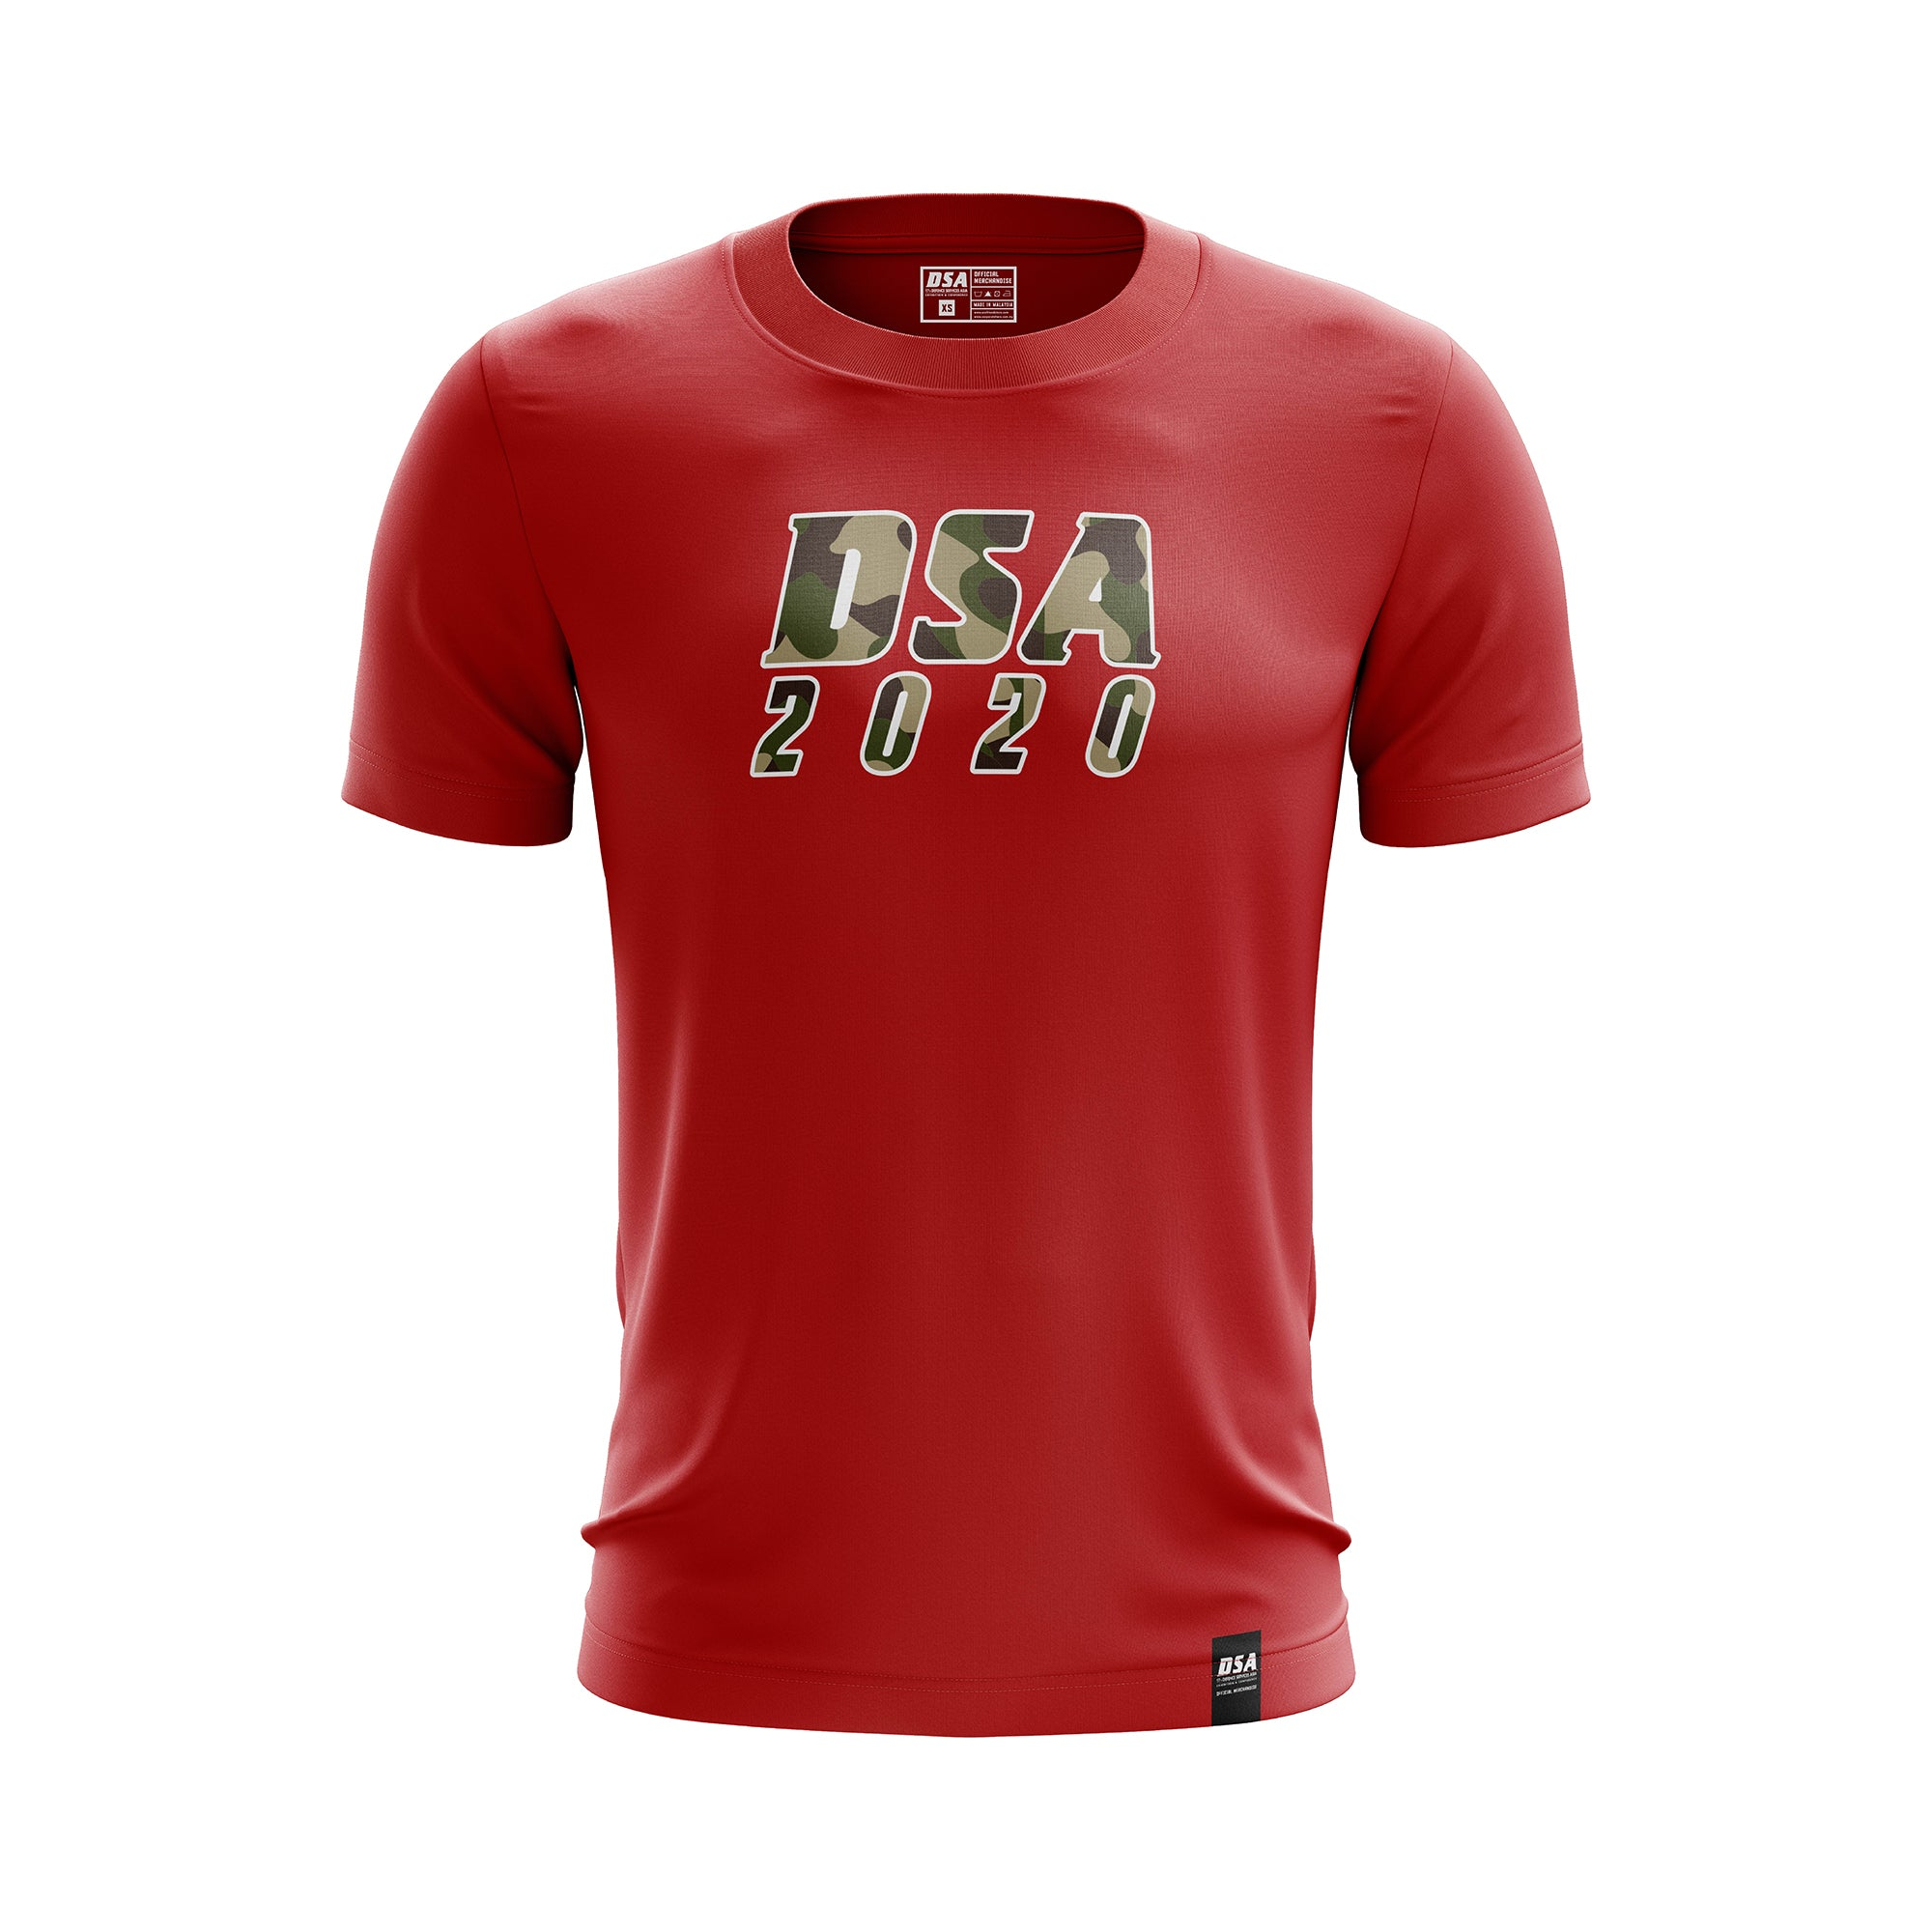 DSA Camouflage Effect Comfort Round Neck T-Shirt Red - DSA 2020 Official Merchandise